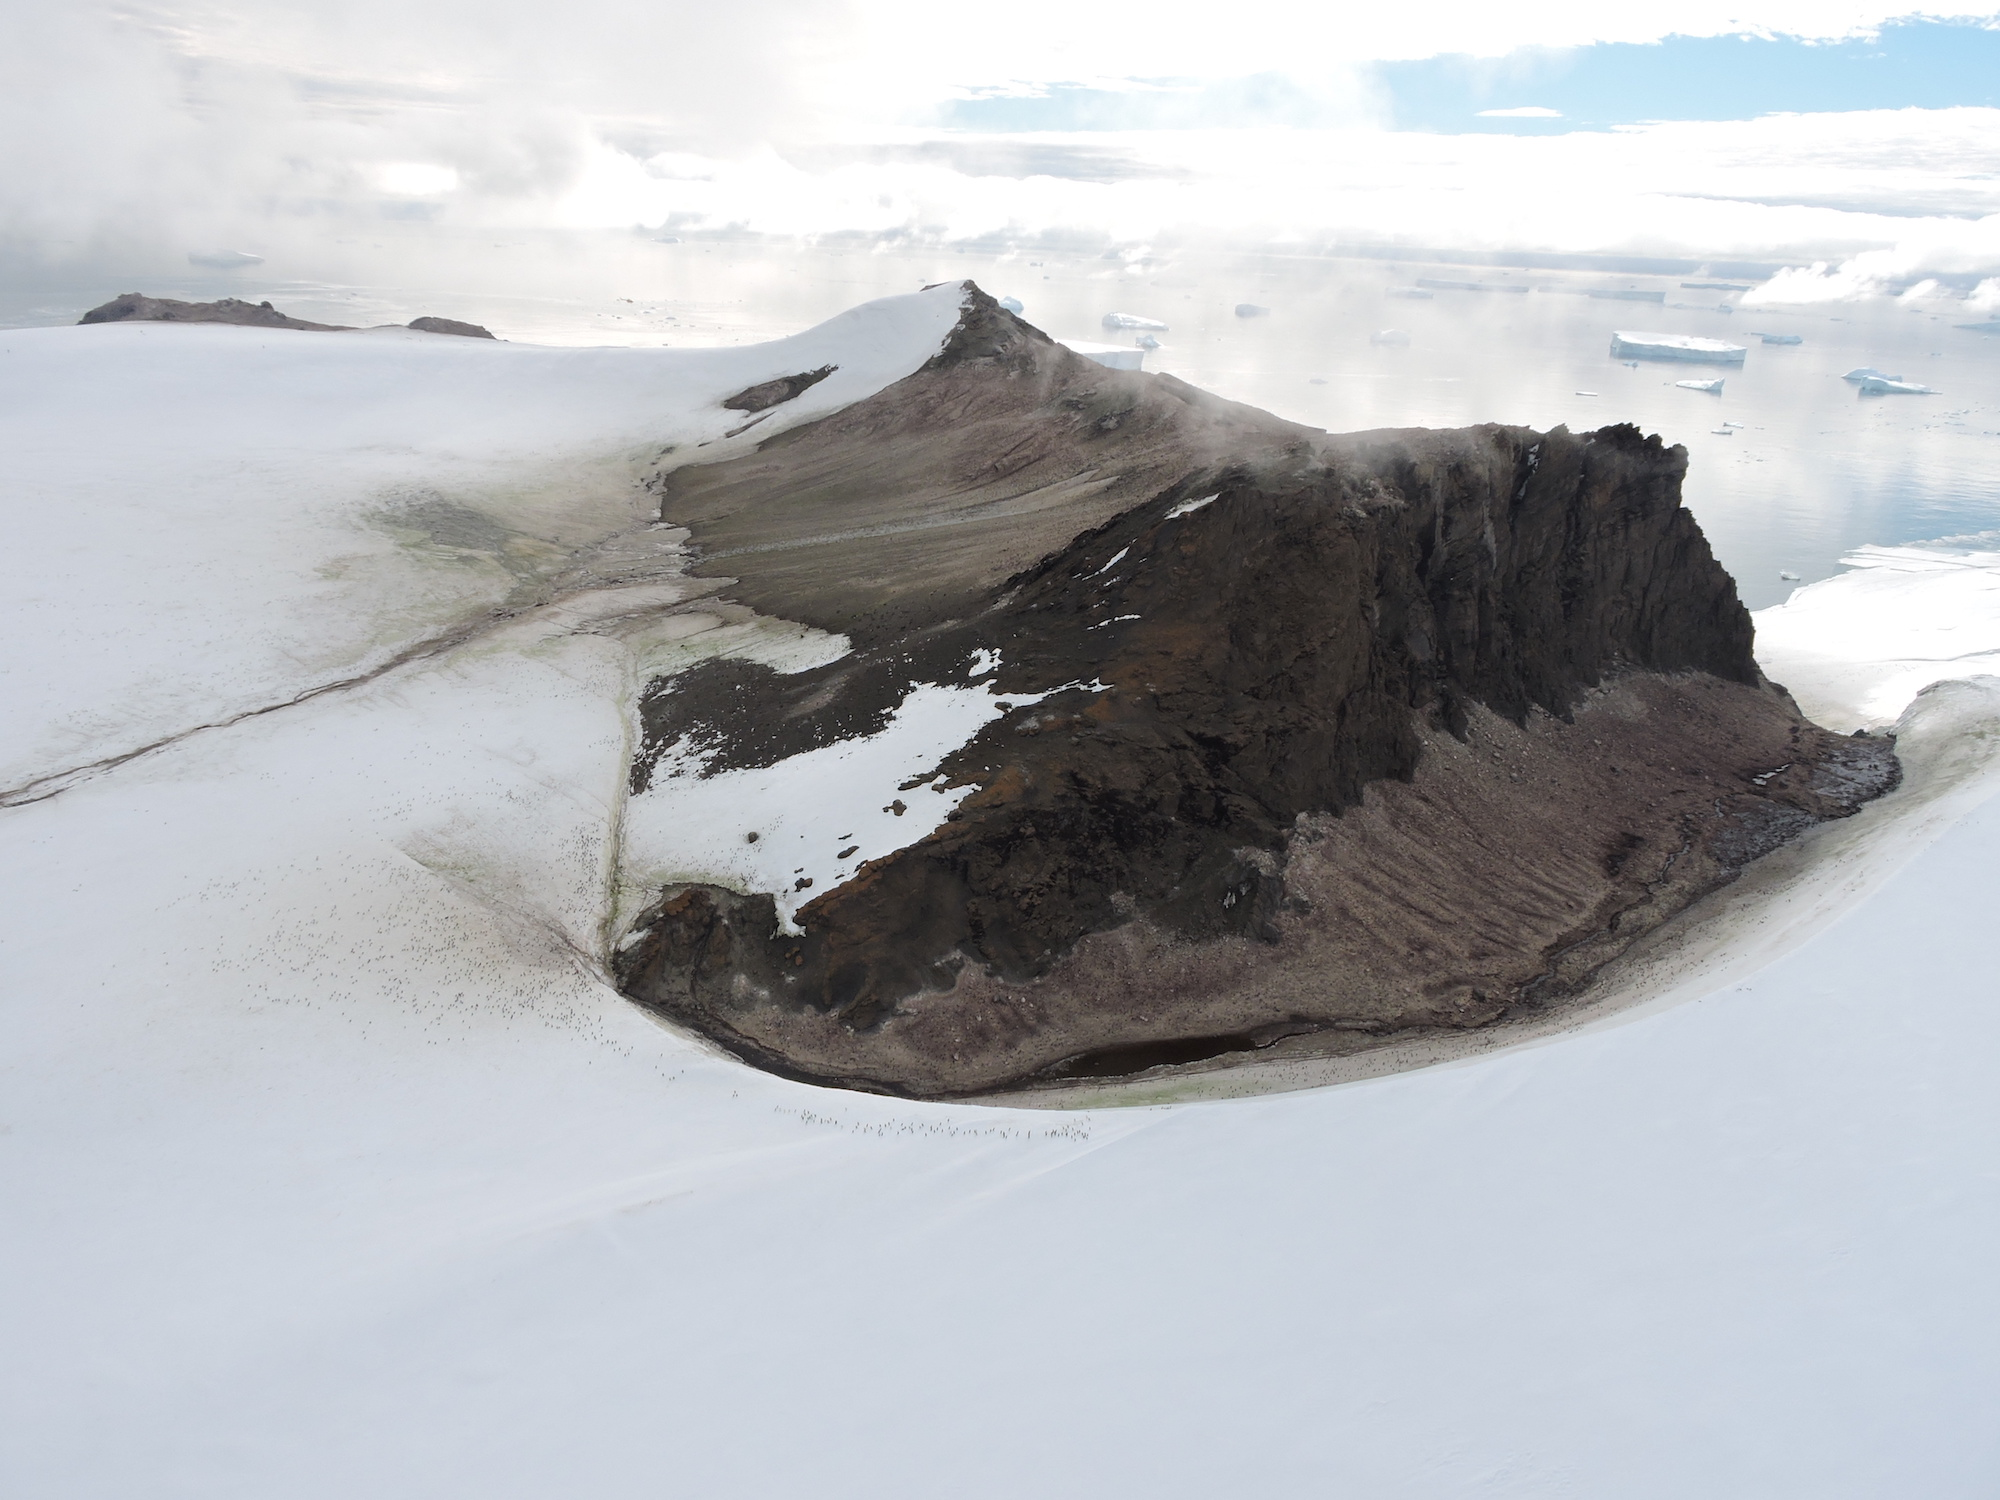 An ice-free area in Marie Byrd Land, West Antarctica